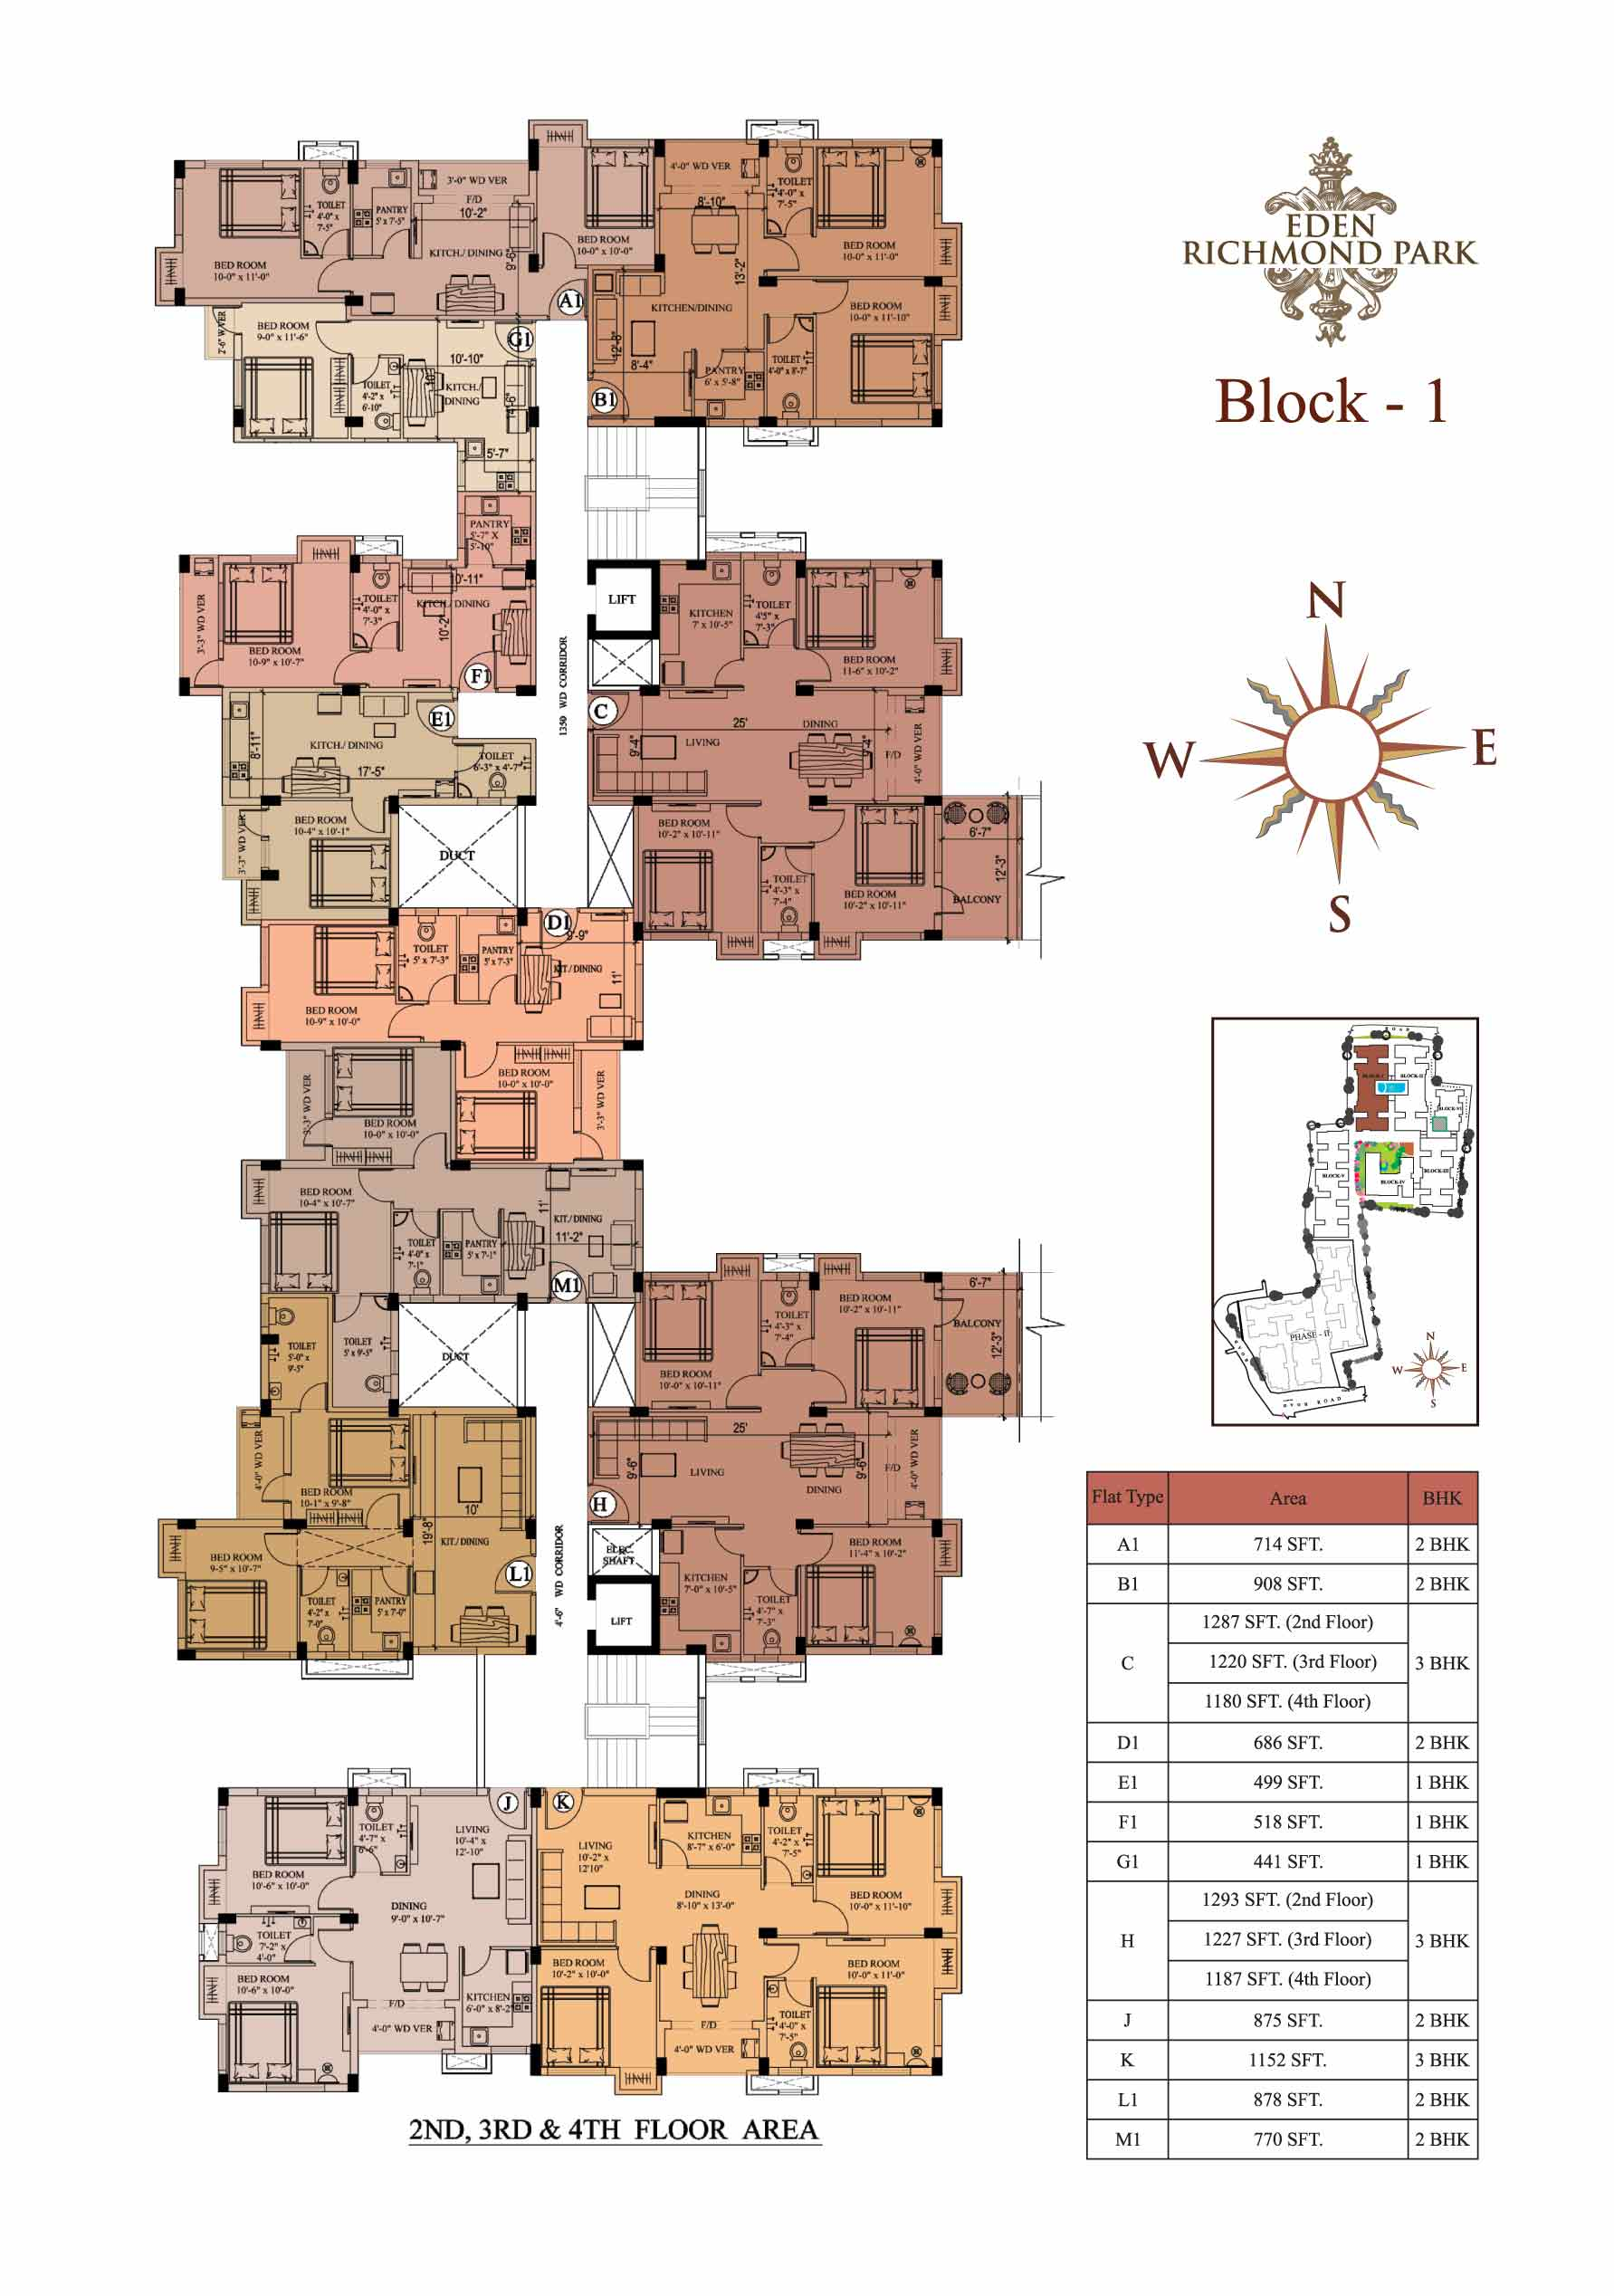 Eden Richmond Park - Block 1 2nd,3rd & 4th Floor Plan